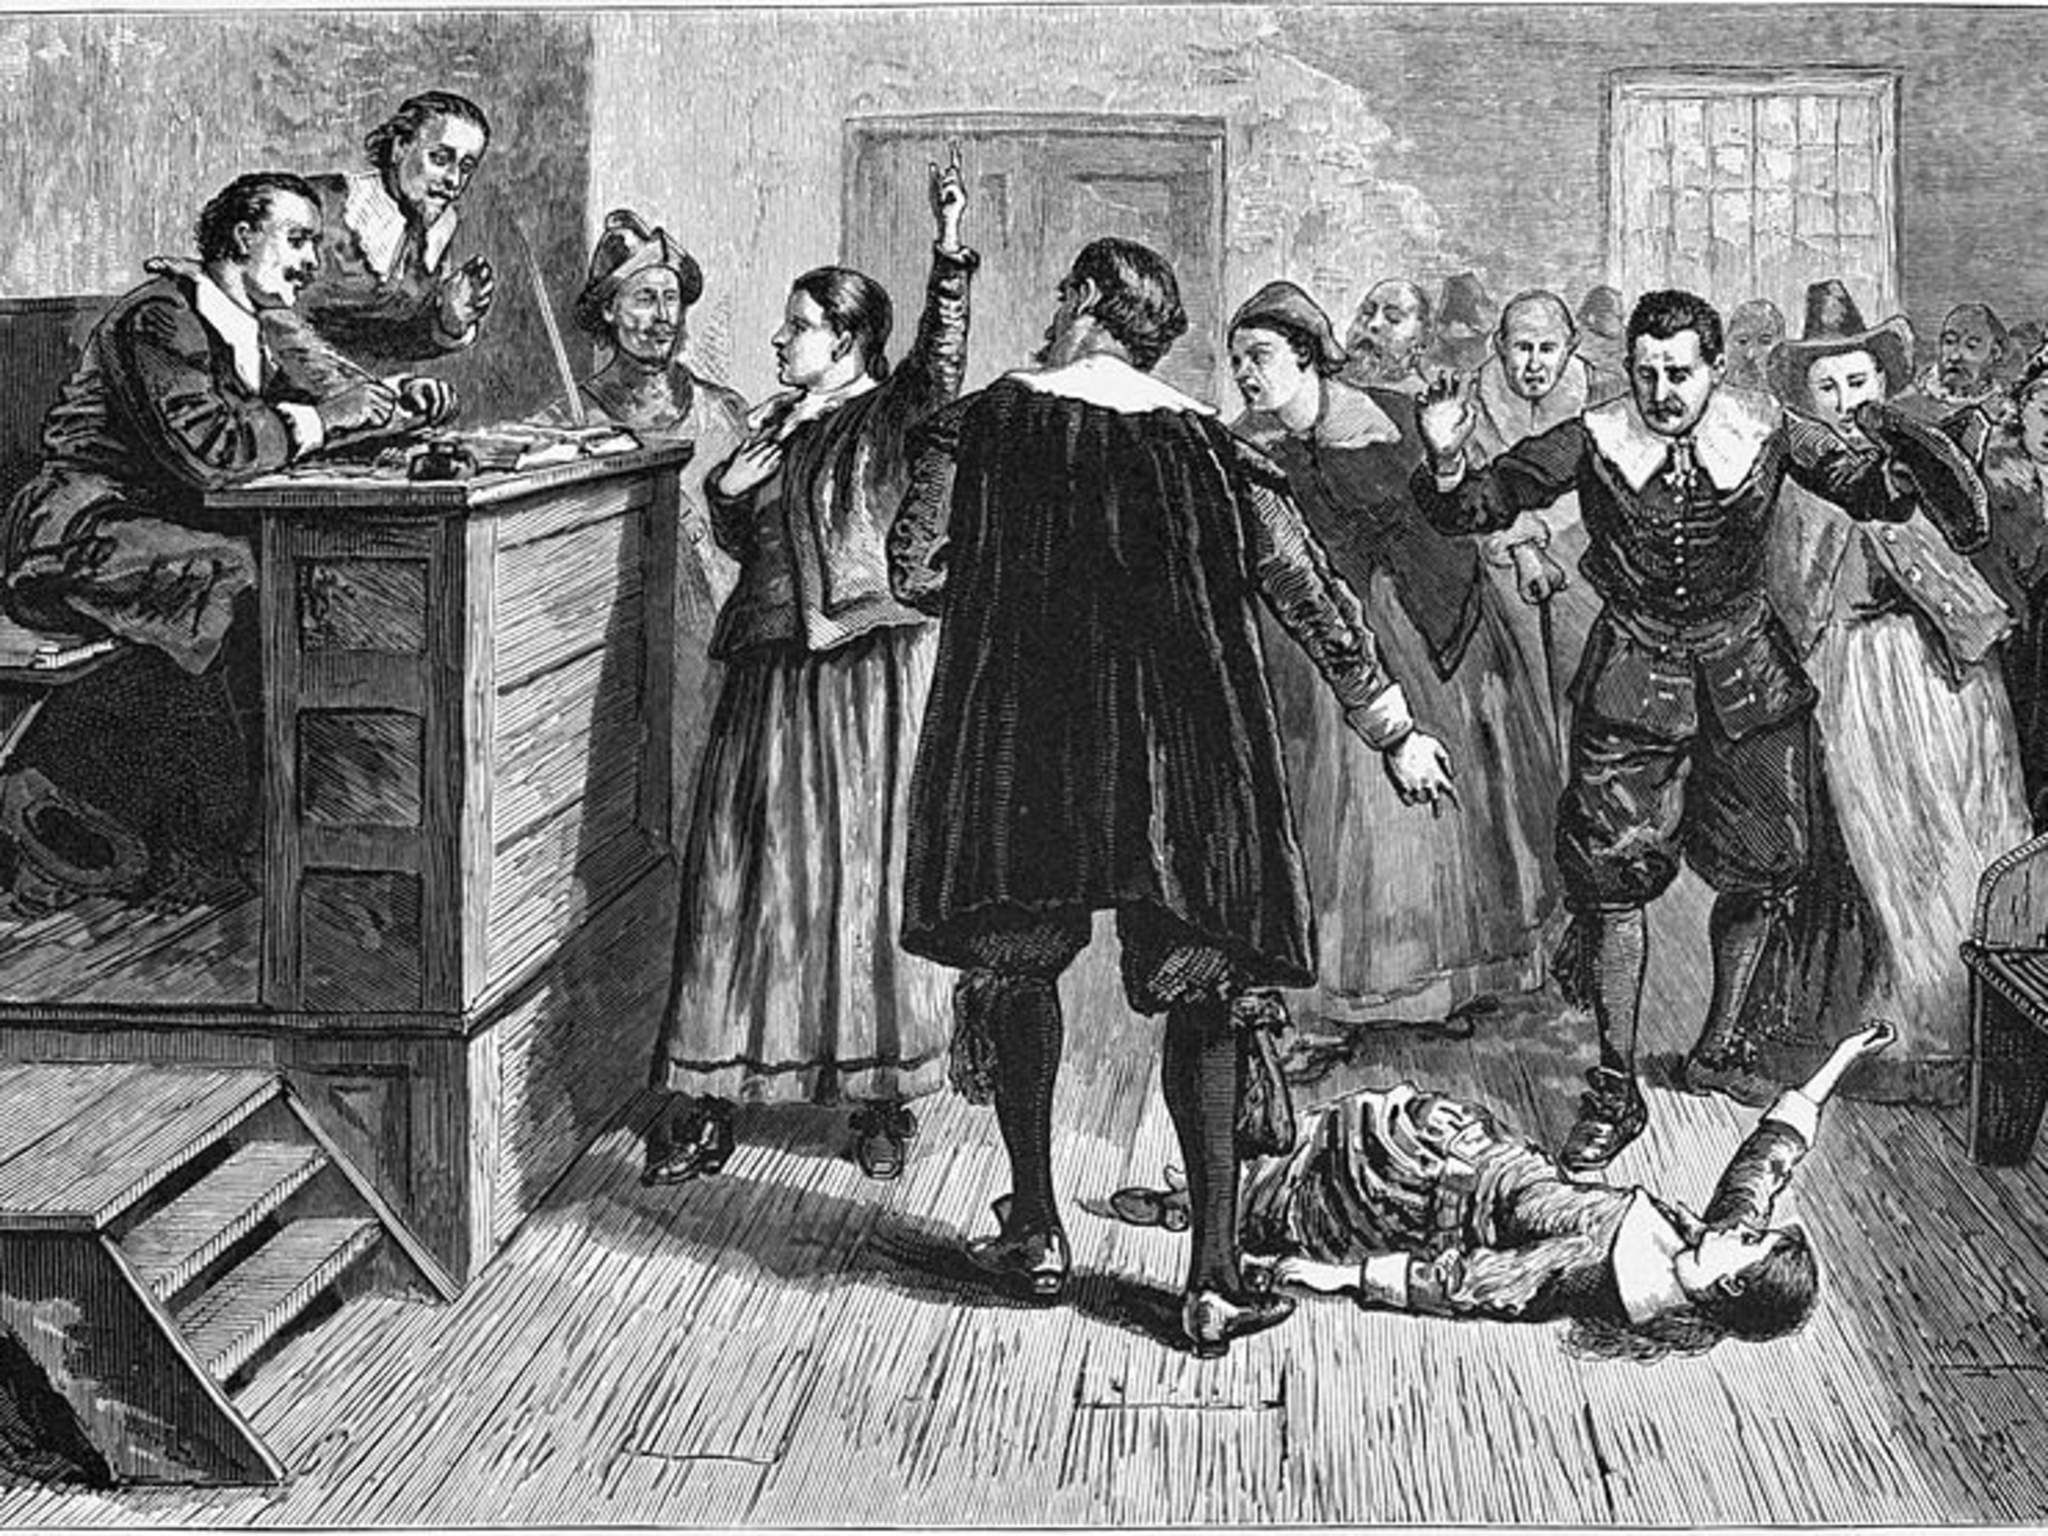 an overview of the infamous salem witchcraft trials of 1692 in massachusetts